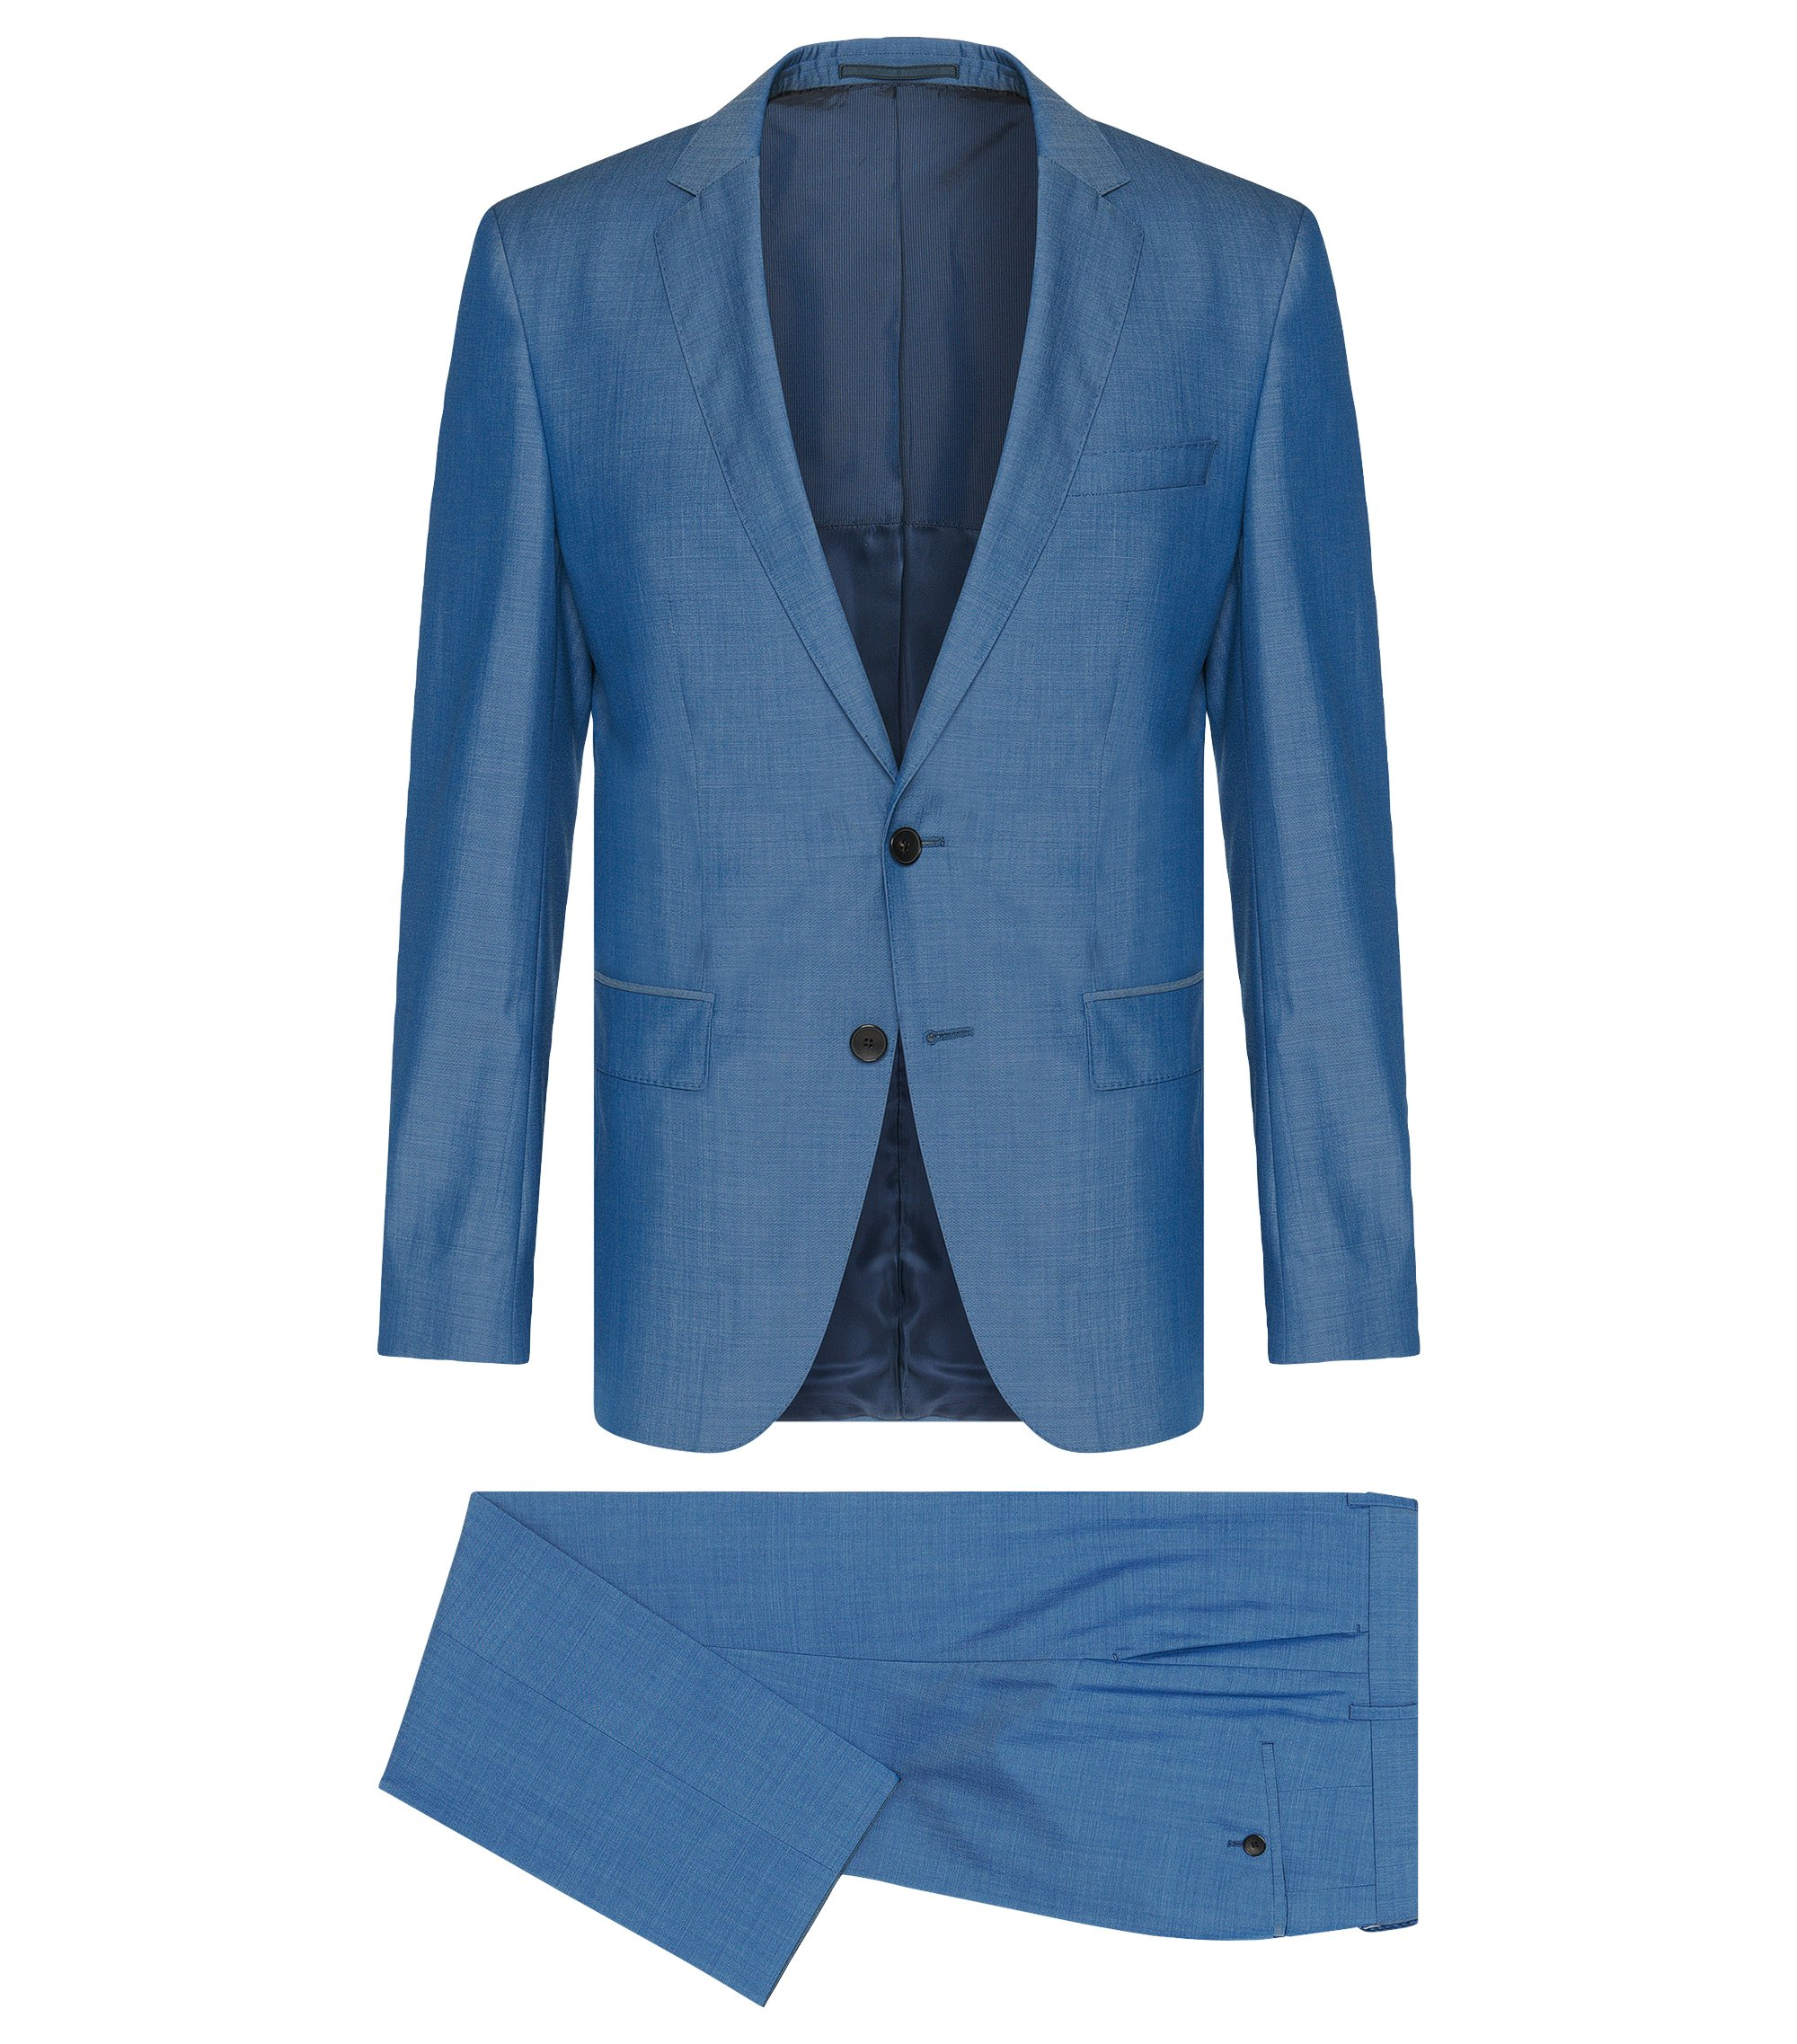 Italian Super 130 Virgin Wool Suit, Slim Fit | Huge/Genius, Turquoise